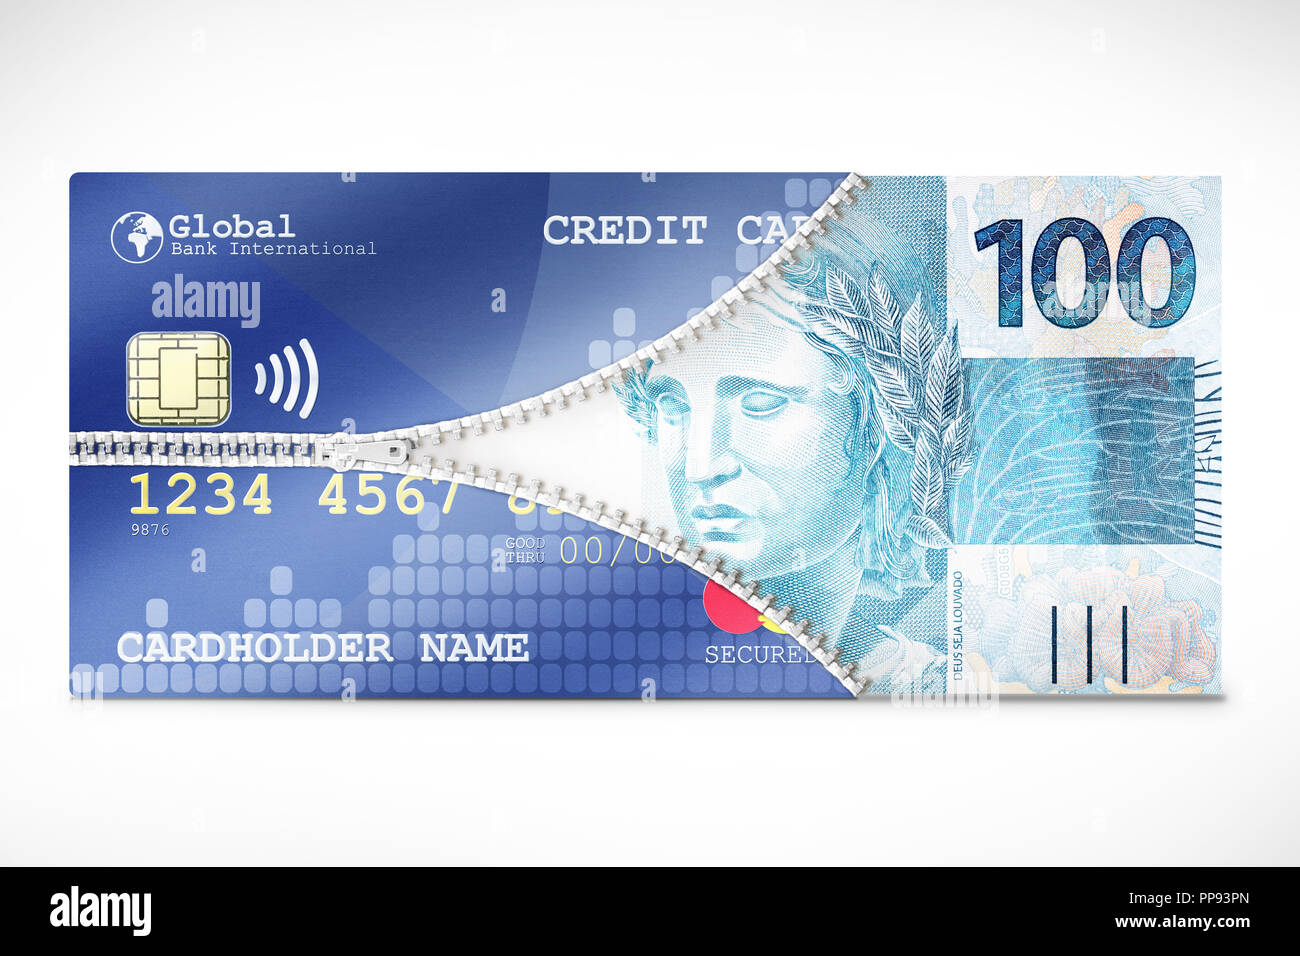 A Credit Card zipping open to release a fiat money bill symbolizing business concepts. - Stock Image